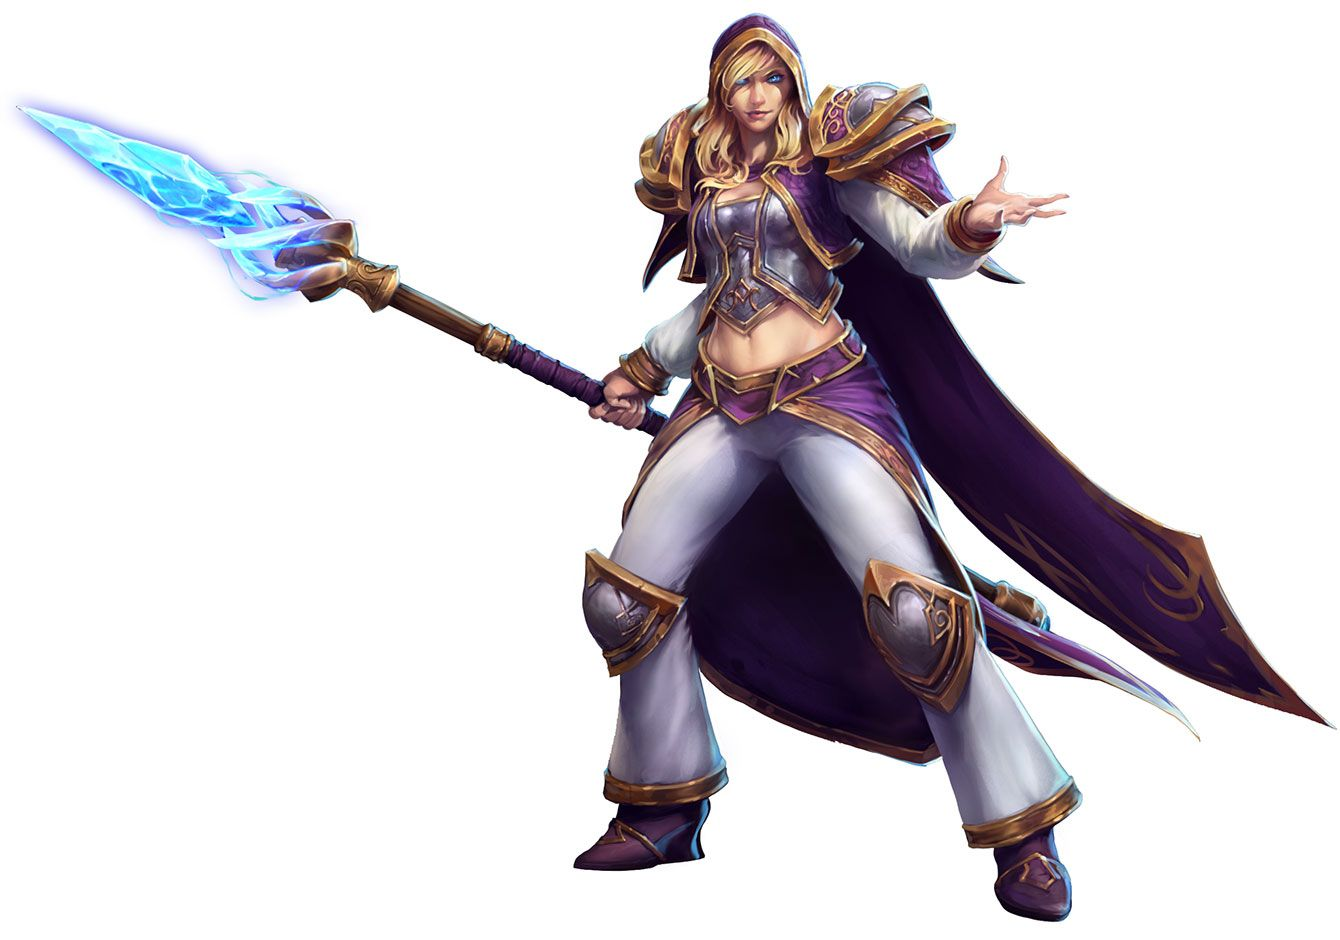 Jaina From Heroes Of The Storm Illustration Artwork Gaming Videogames Heroes Of The Storm Character Art Storm Art Find the best hots jaina build and learn jaina's abilities, talents, and strategy. heroes of the storm character art